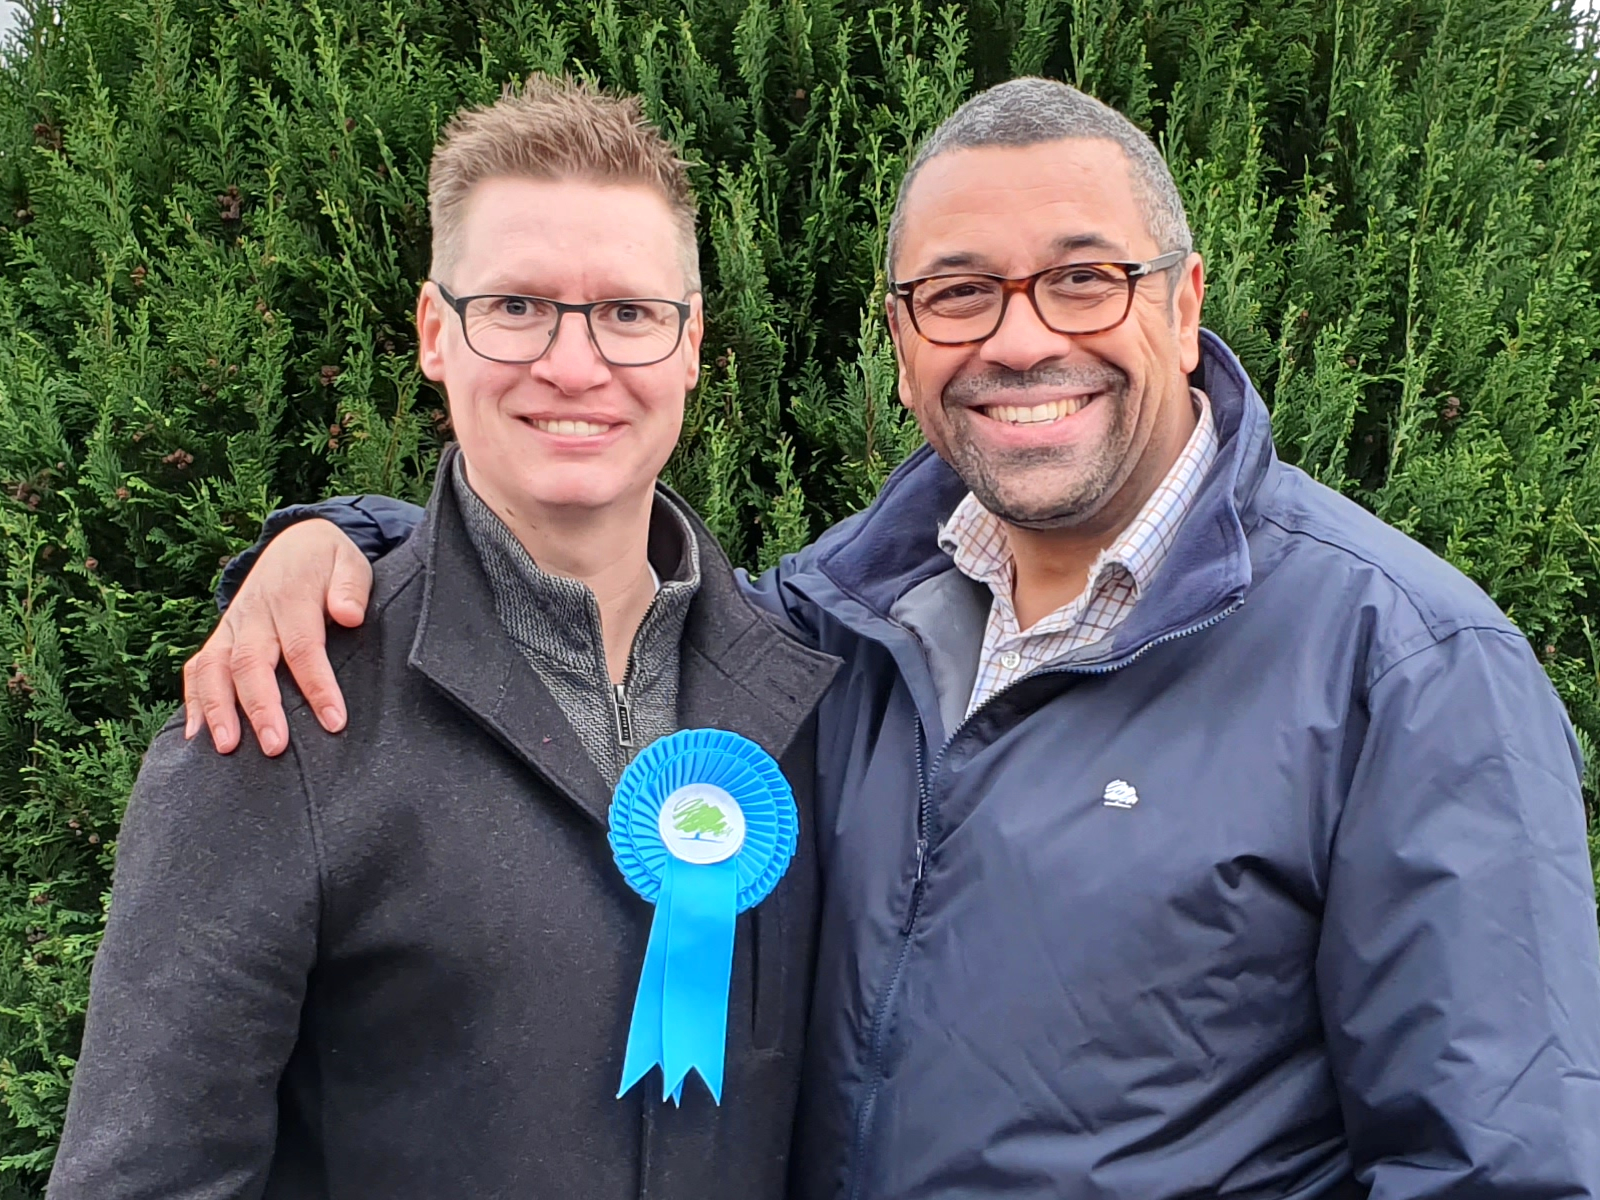 James Cleverly & Steven Galton in Southhampton